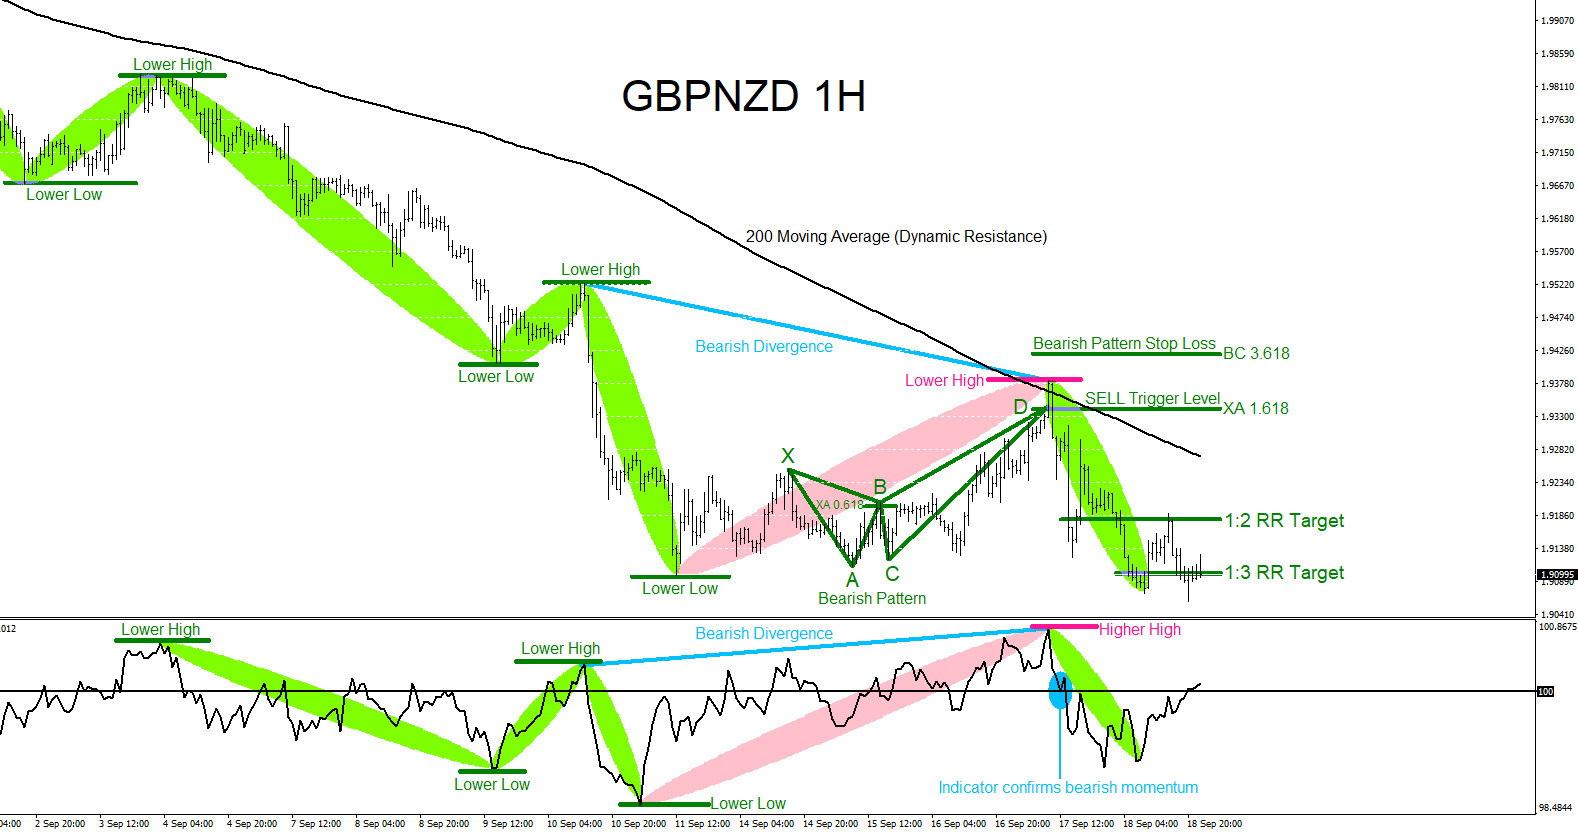 GBPNZD : Trading with the Trend